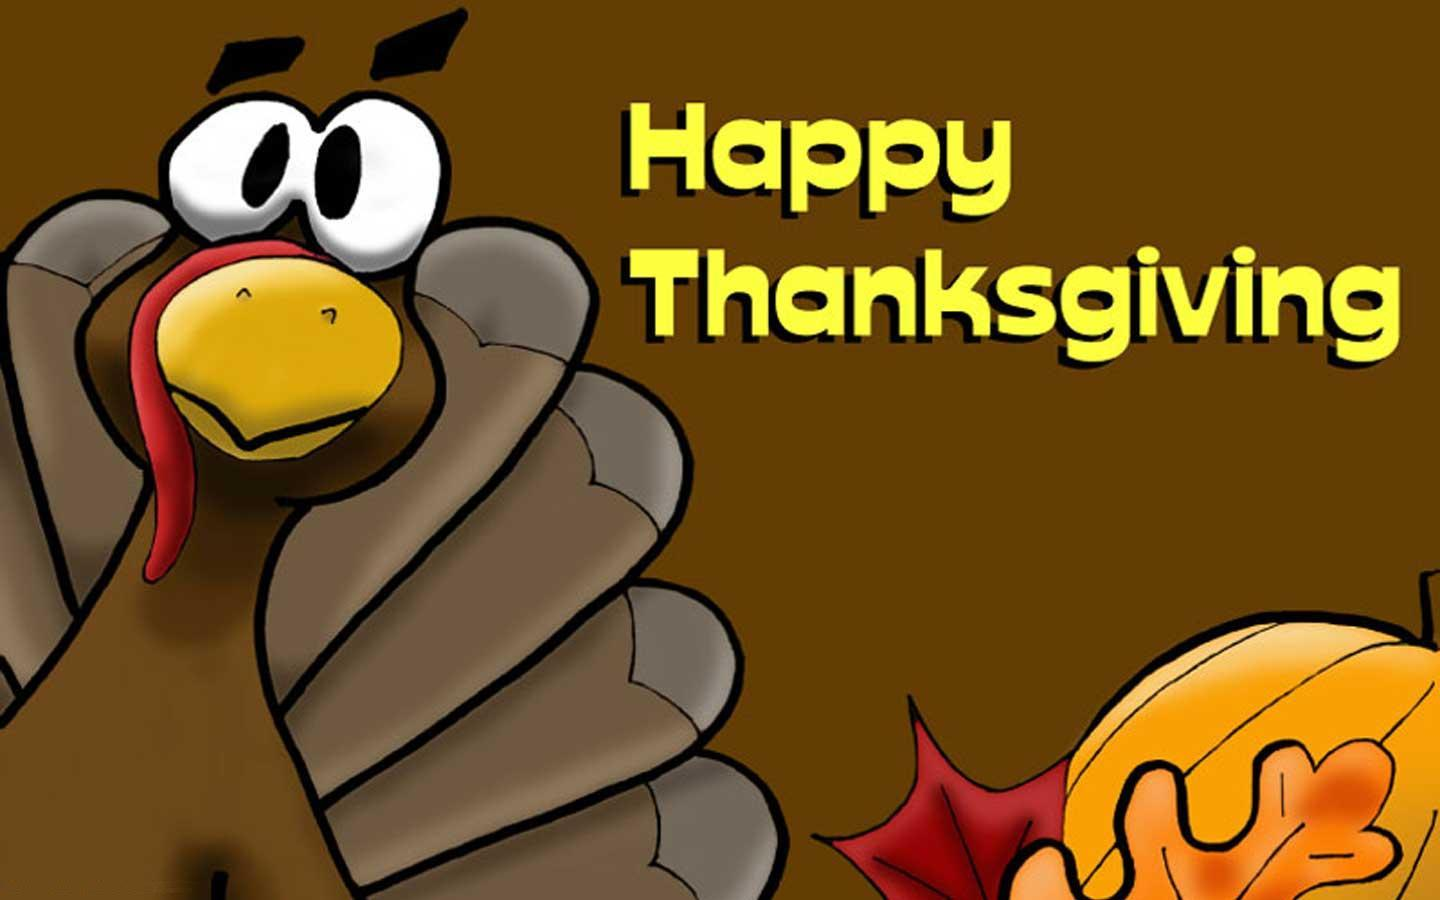 image about Happy Thanksgiving Signs Printable referred to as November 2013 Optimist Club of Gettysburg